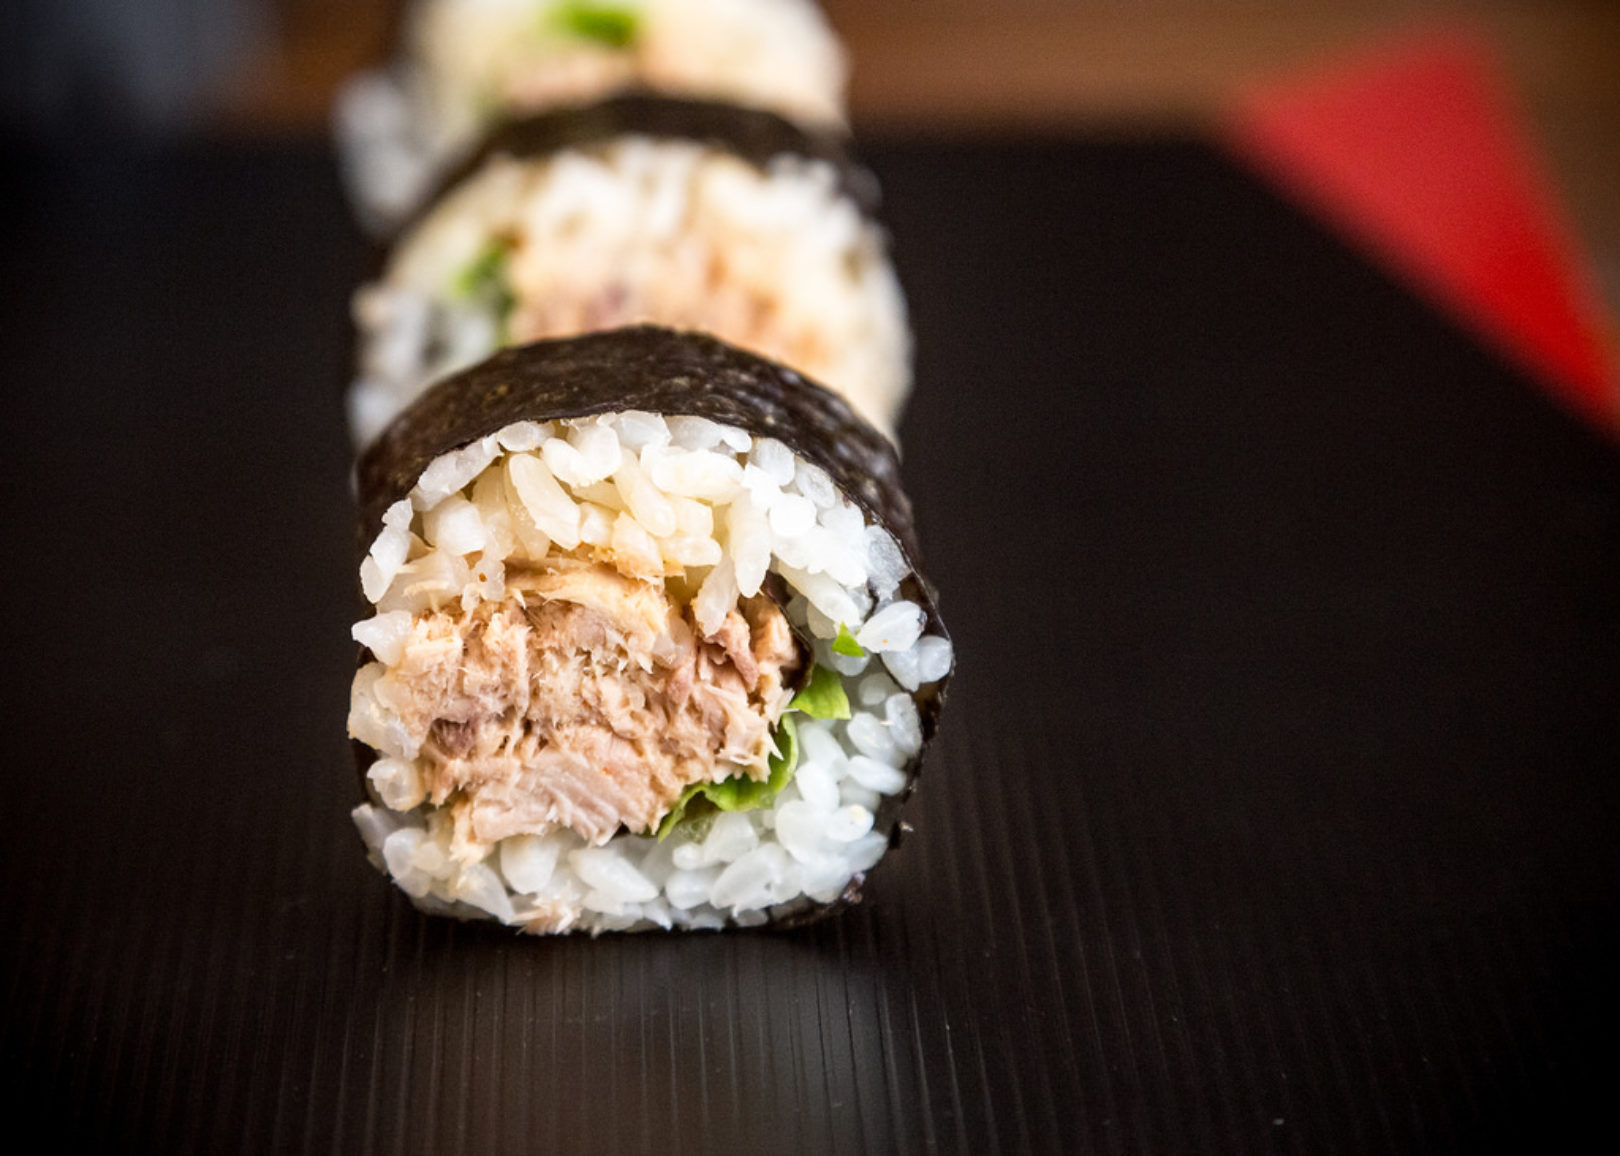 Spicy Tuna Salad Roll